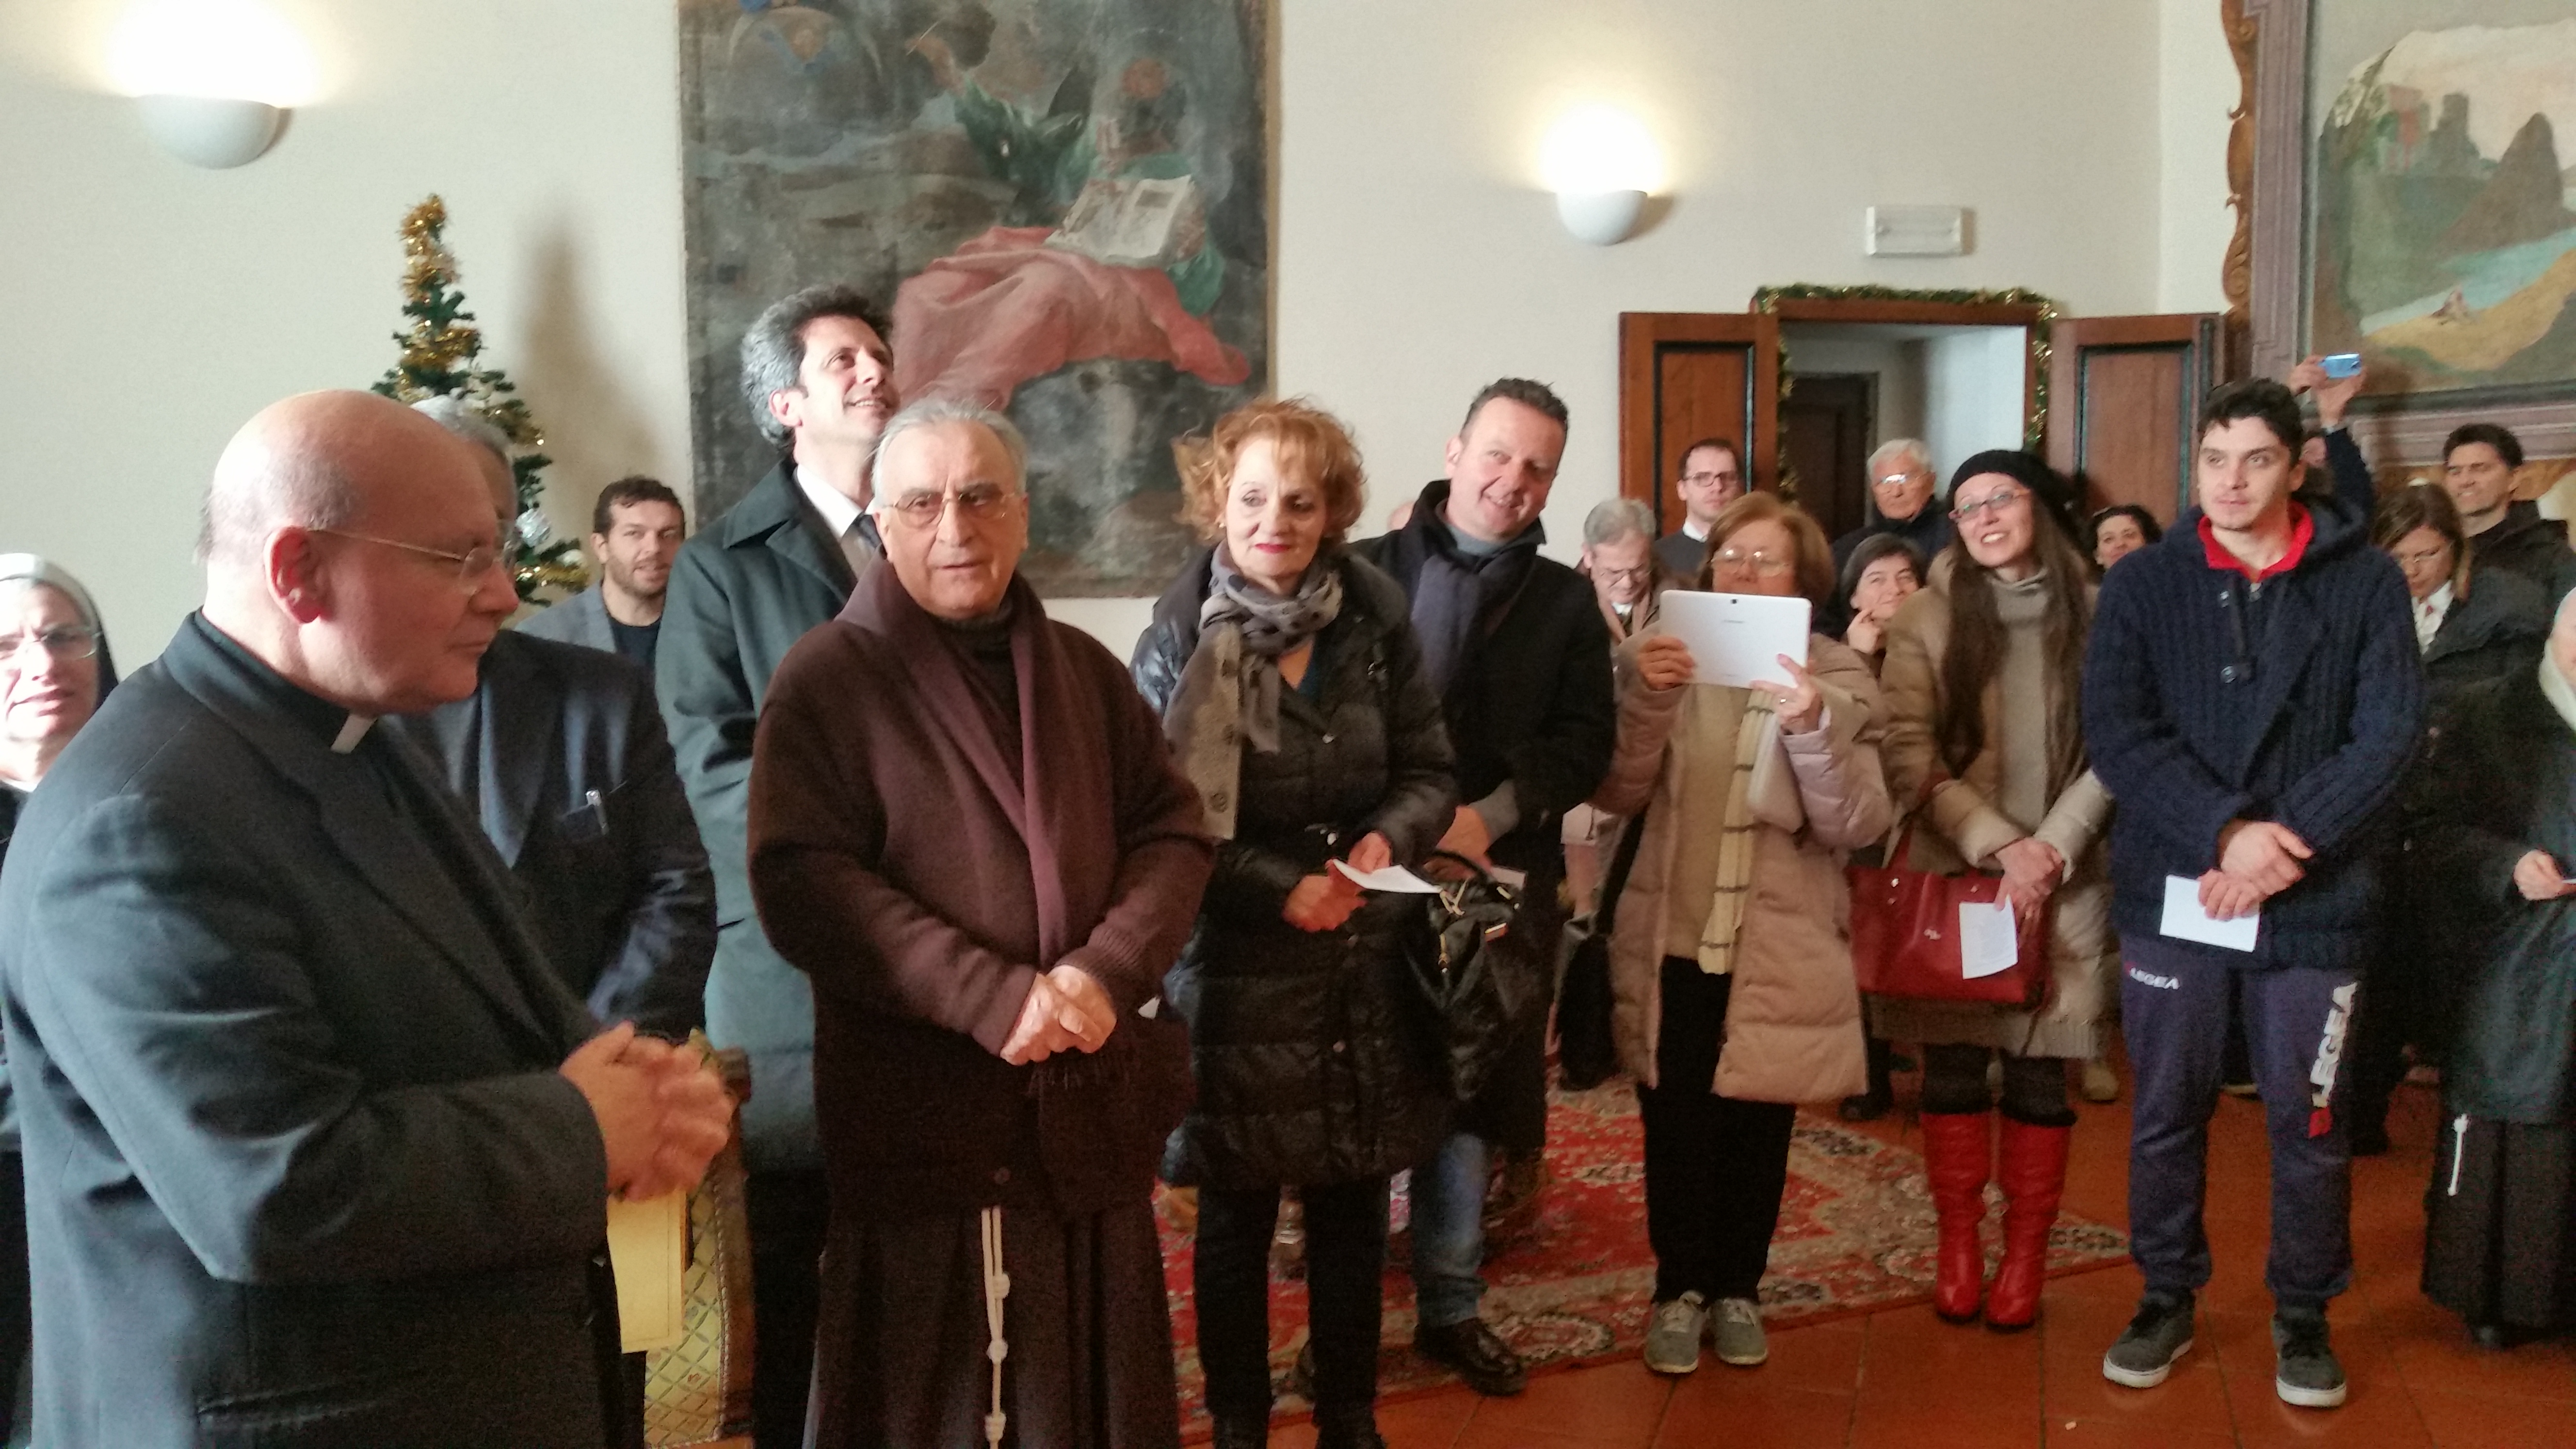 Christmas wishes by Mgr. Domenico Sorrentino